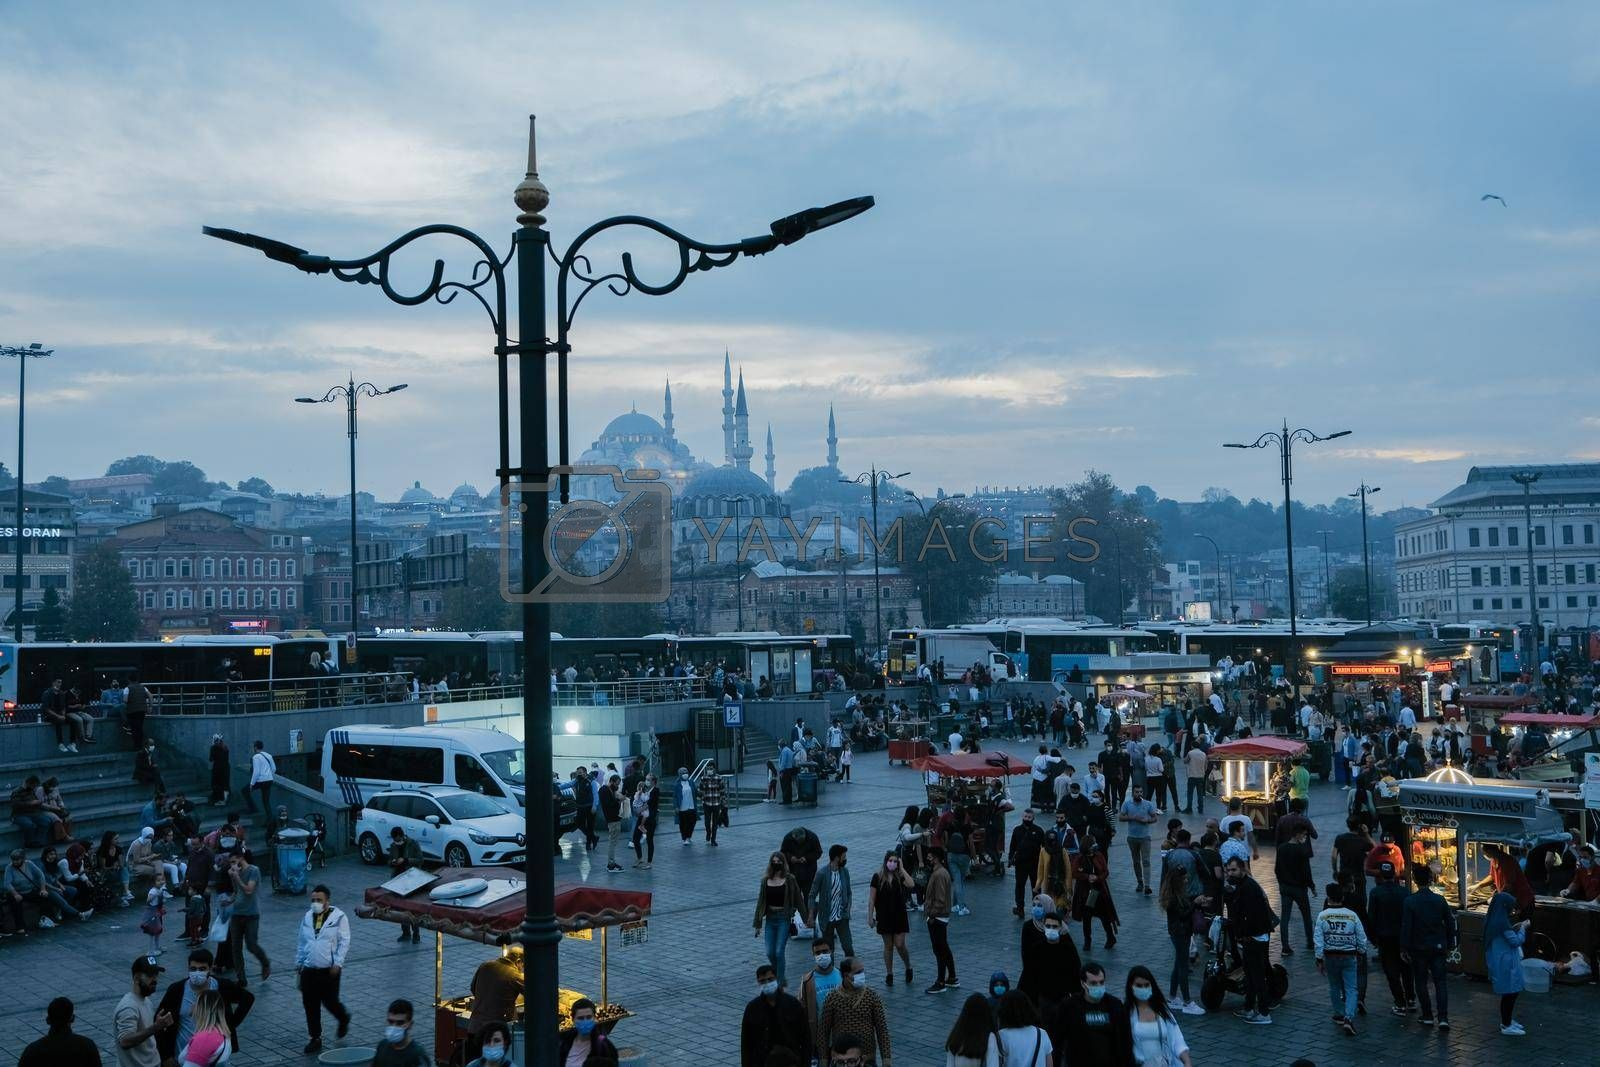 Eminonu, Istanbul, Turkey - November 05, 2020. The picture was taken in Eminonu district on Galata bridge in the afternoon and depicts the crowd and mosques around.